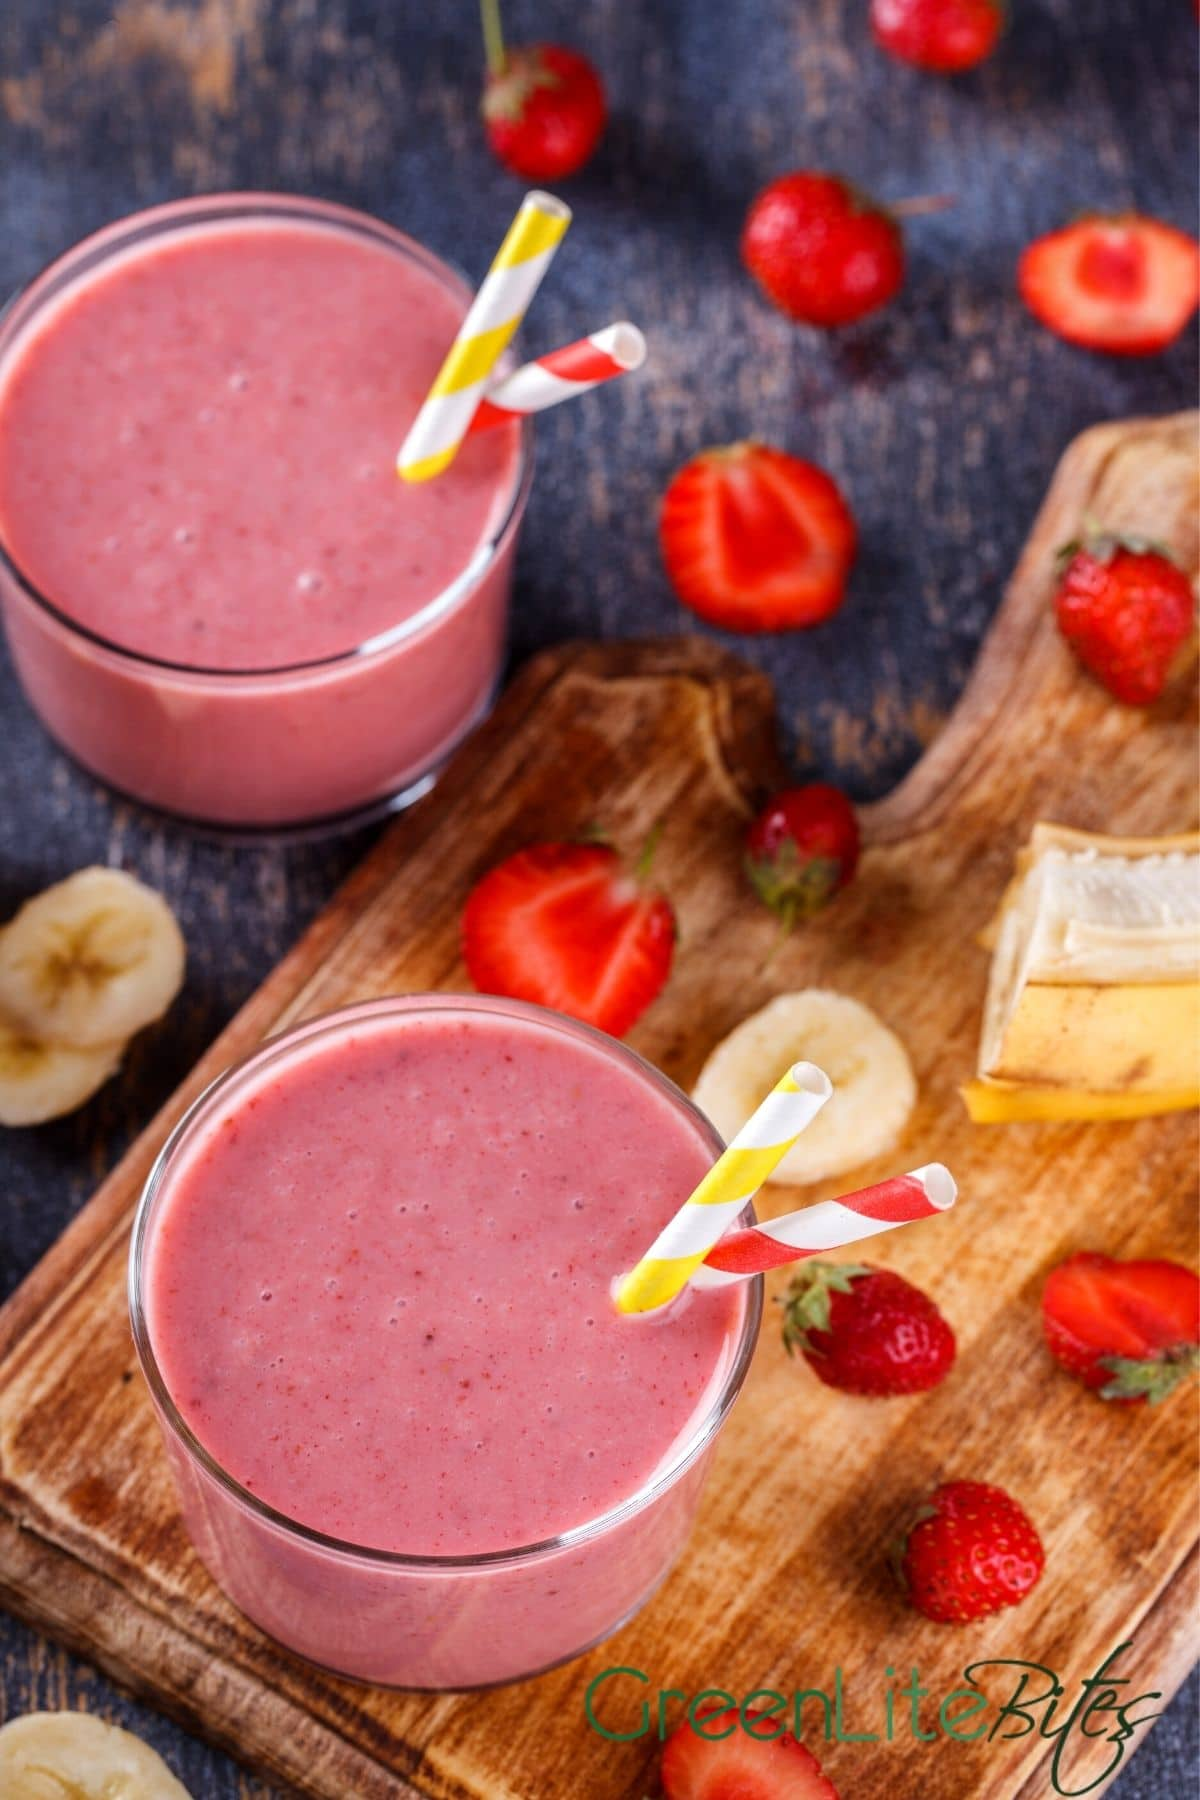 Glasses of smoothie on cutting board